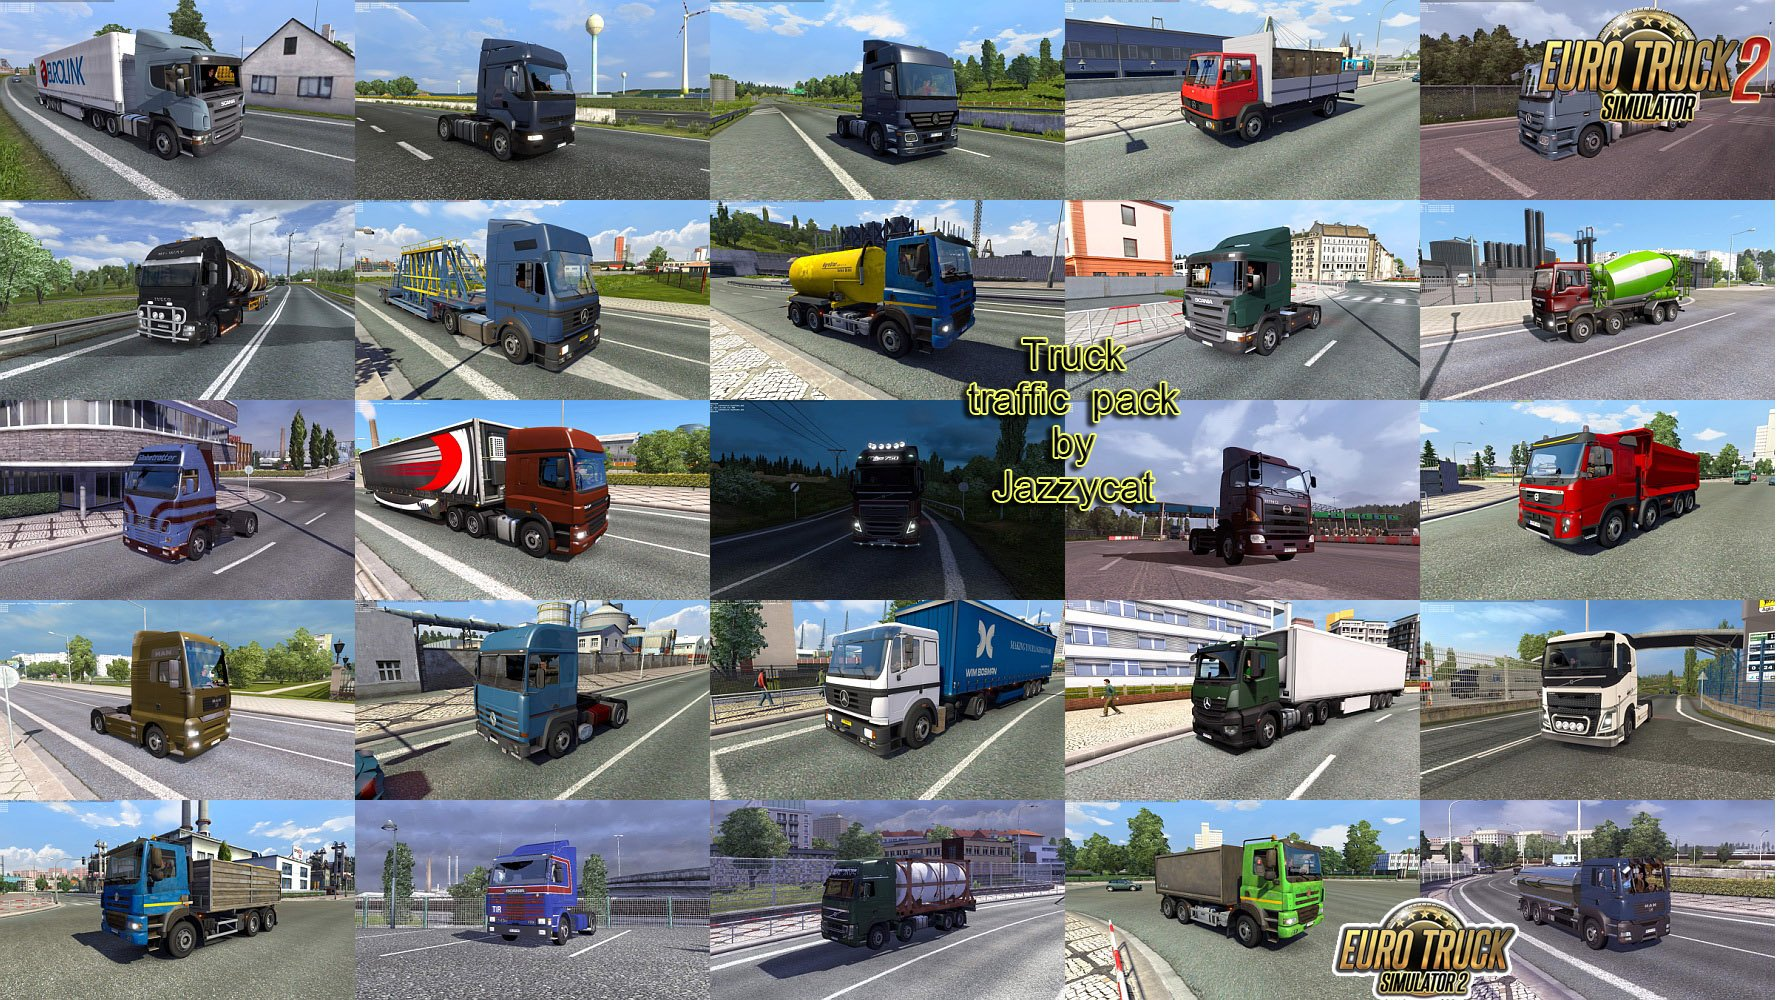 Truck Traffic Pack v3.1.1 by Jazzycat